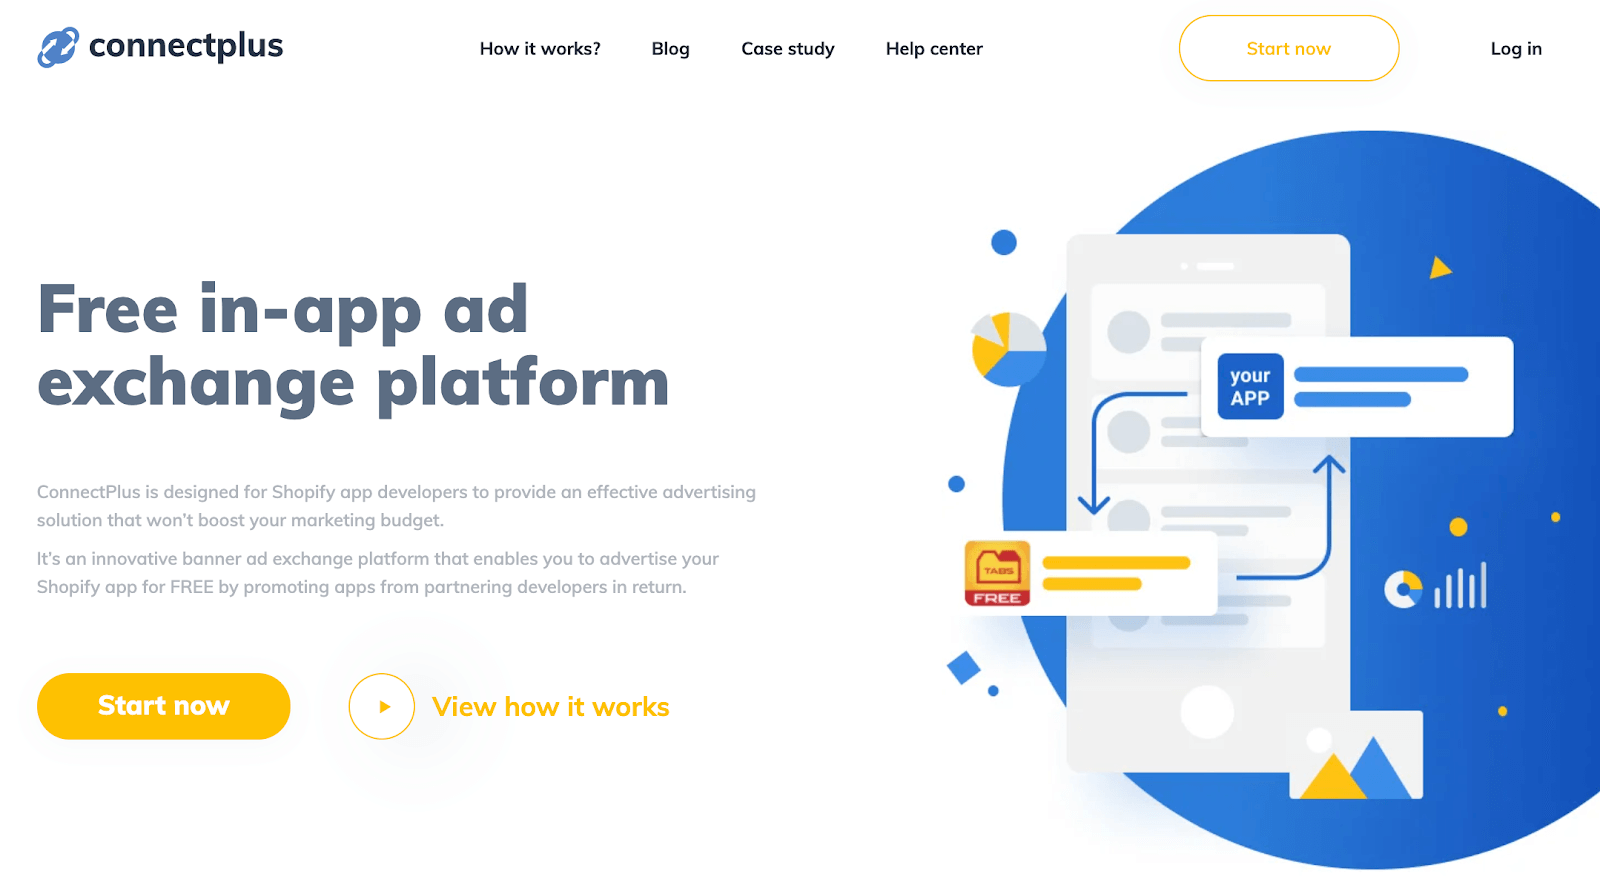 Connectplus homepage for Shopify partners